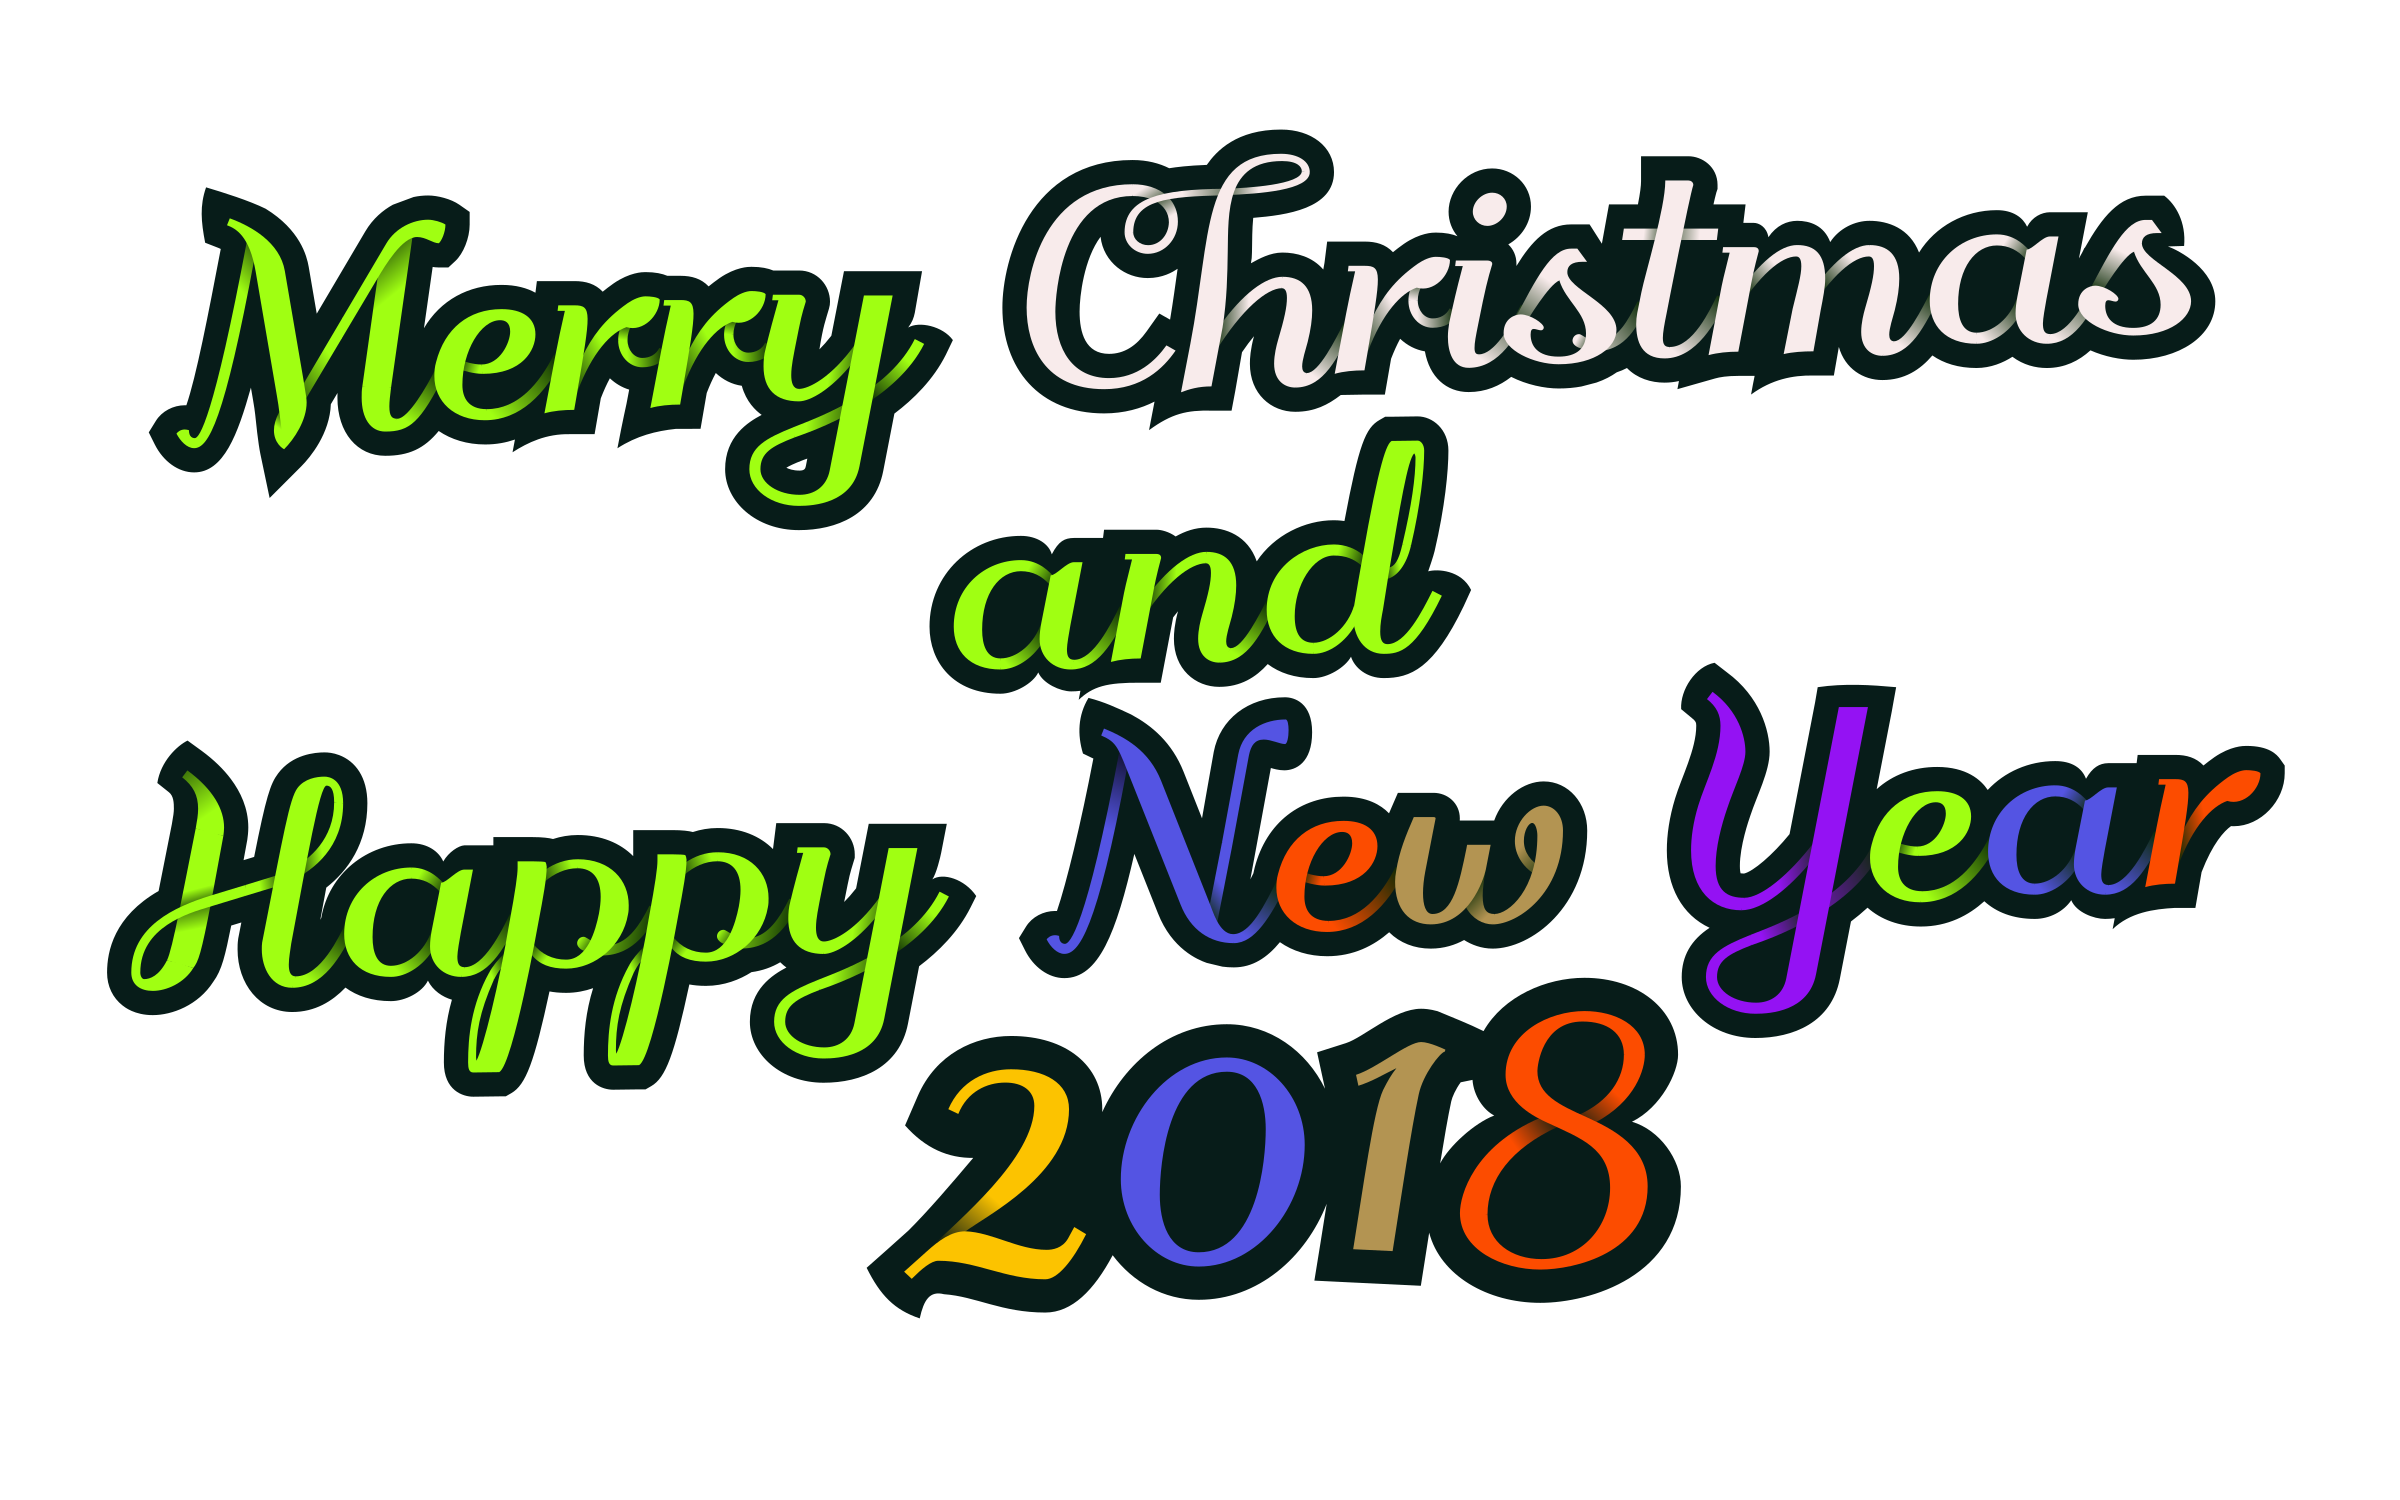 Happy new year logo png. Clipart merry christmas decorative